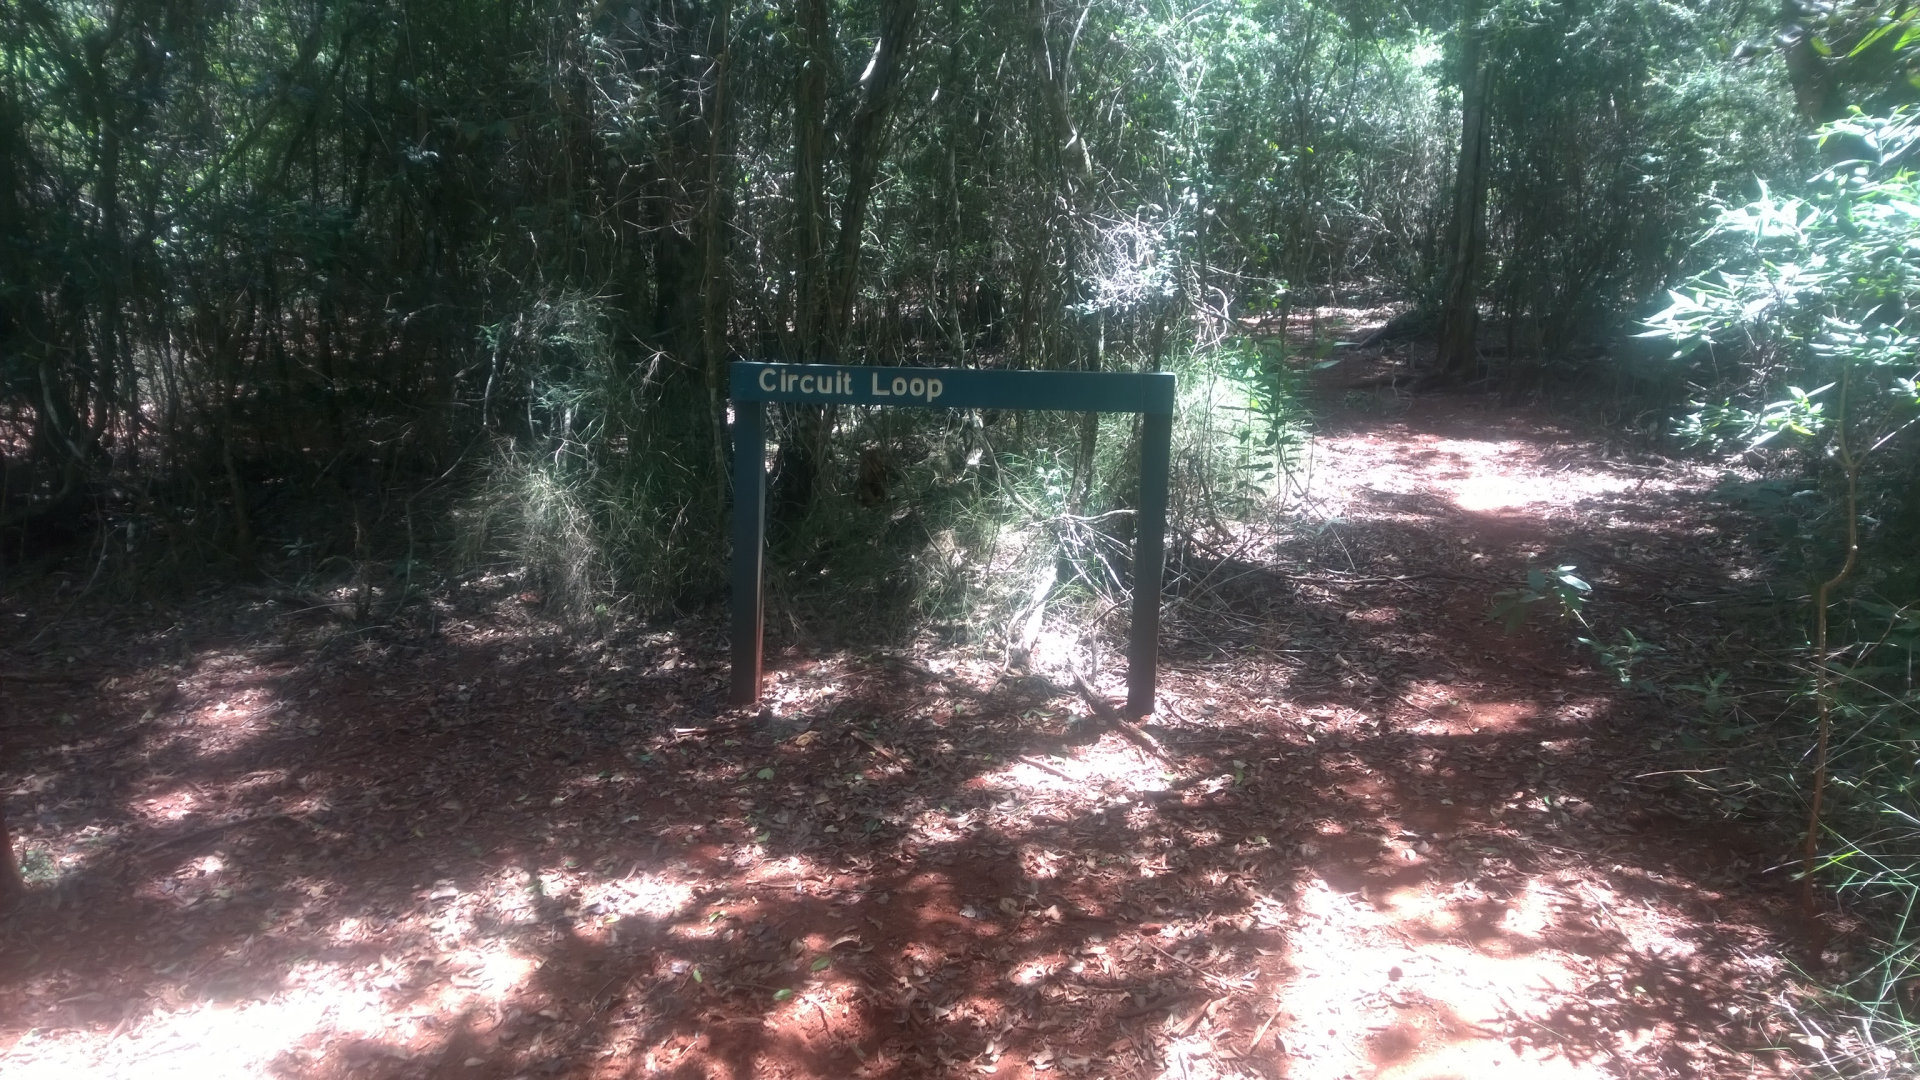 Start of the Circuit Loop walk at Jack Smith Scrub Conservation Park. It is a small softwood scrub in an area once a vast dry rainforest, mostly cleared for agriculture use